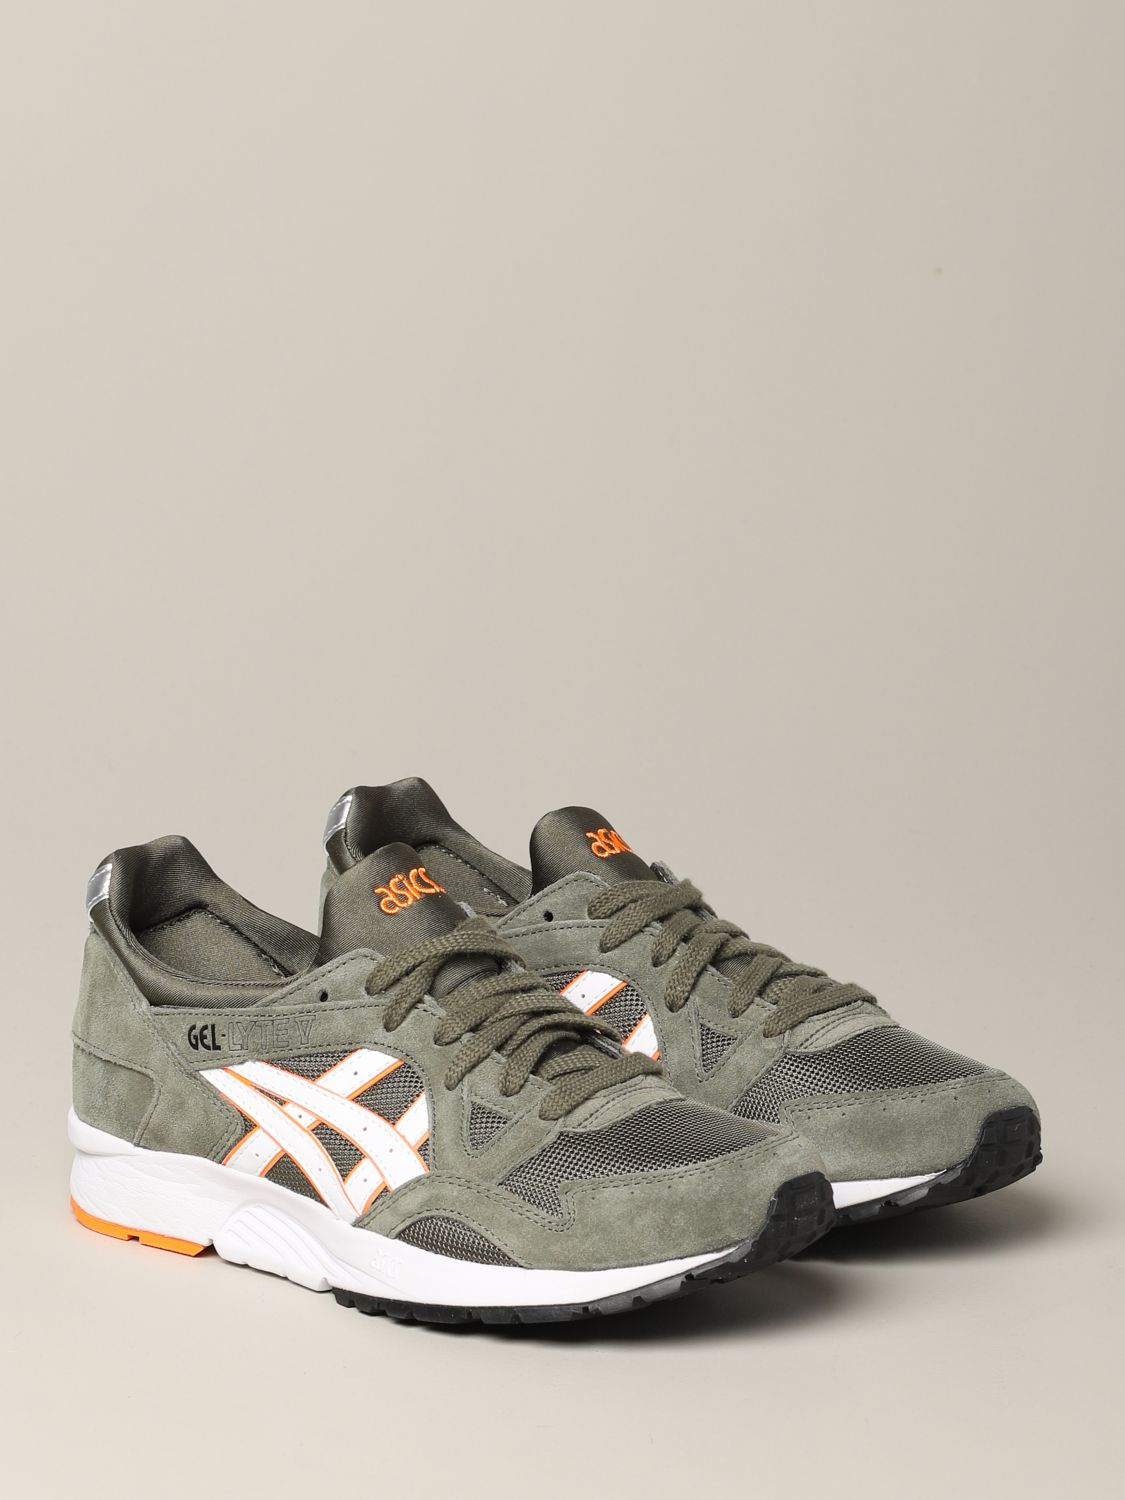 asic sneakers for mens